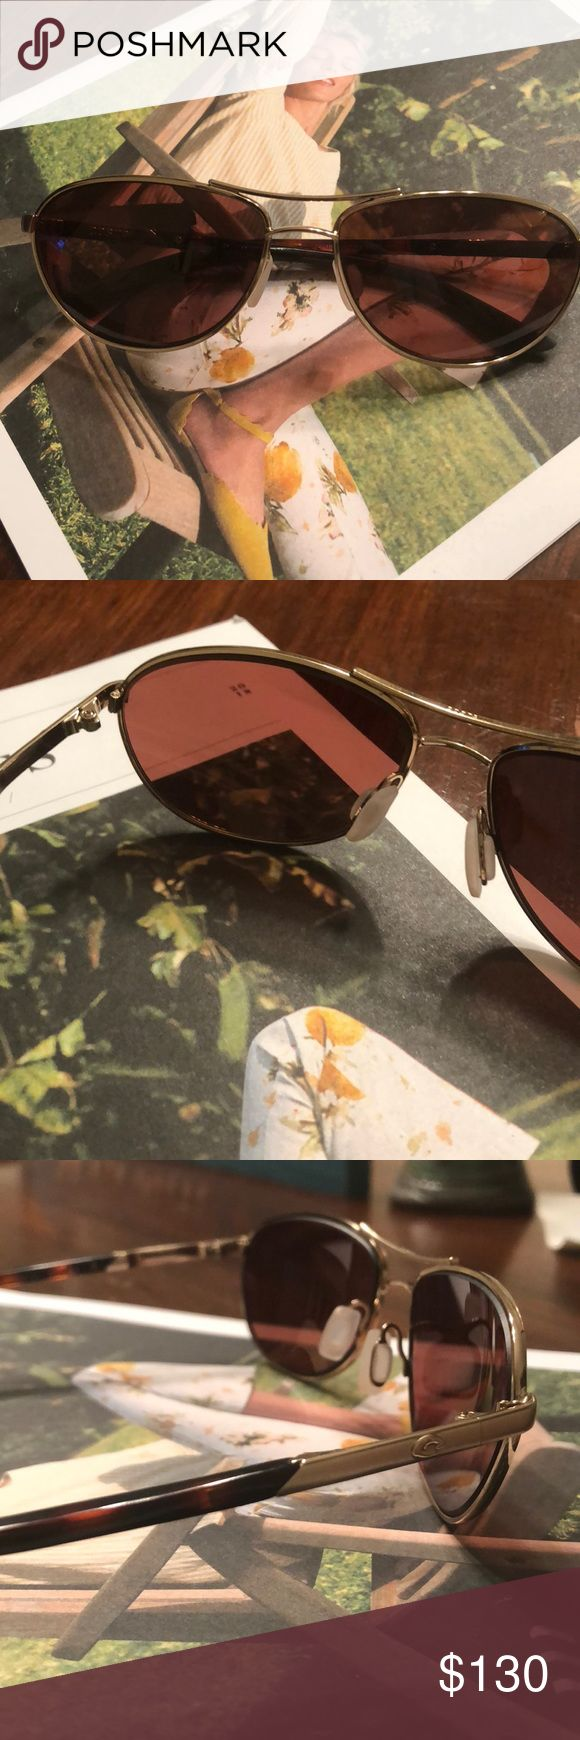 Costa Del Mar Sunglasses KC 580P Rose Gold (NWOT) BRAND NEW (NWOT) Perfect Condition, Rose Gold Frame, D704, 765 KC 64, Amber Polarized 580P Lenses. Never Worn, Perfect Condition, Small Frame, No Scratches, No Loose Screws, Clean Nose Pads, Costa Case, Decal and Paperwork. Beautiful Pair of Sunglasses and Great Fit! Costa Del Mar Accessories Sunglasses